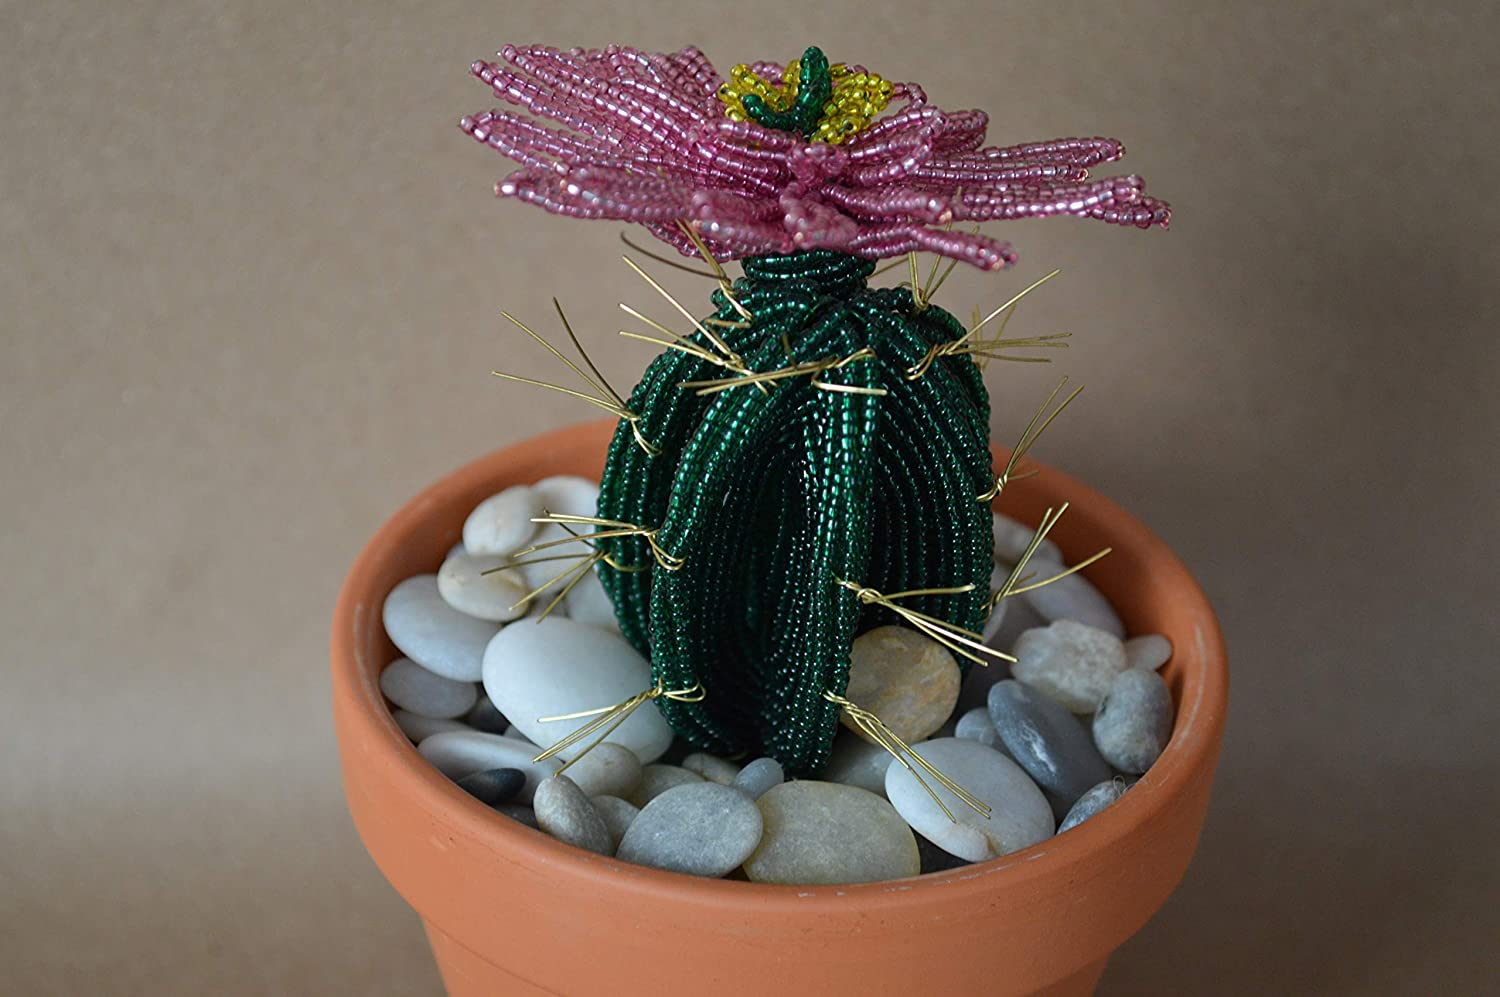 French beaded flowers Fees Albuquerque Mall free potted cactus plant clay flower in pink